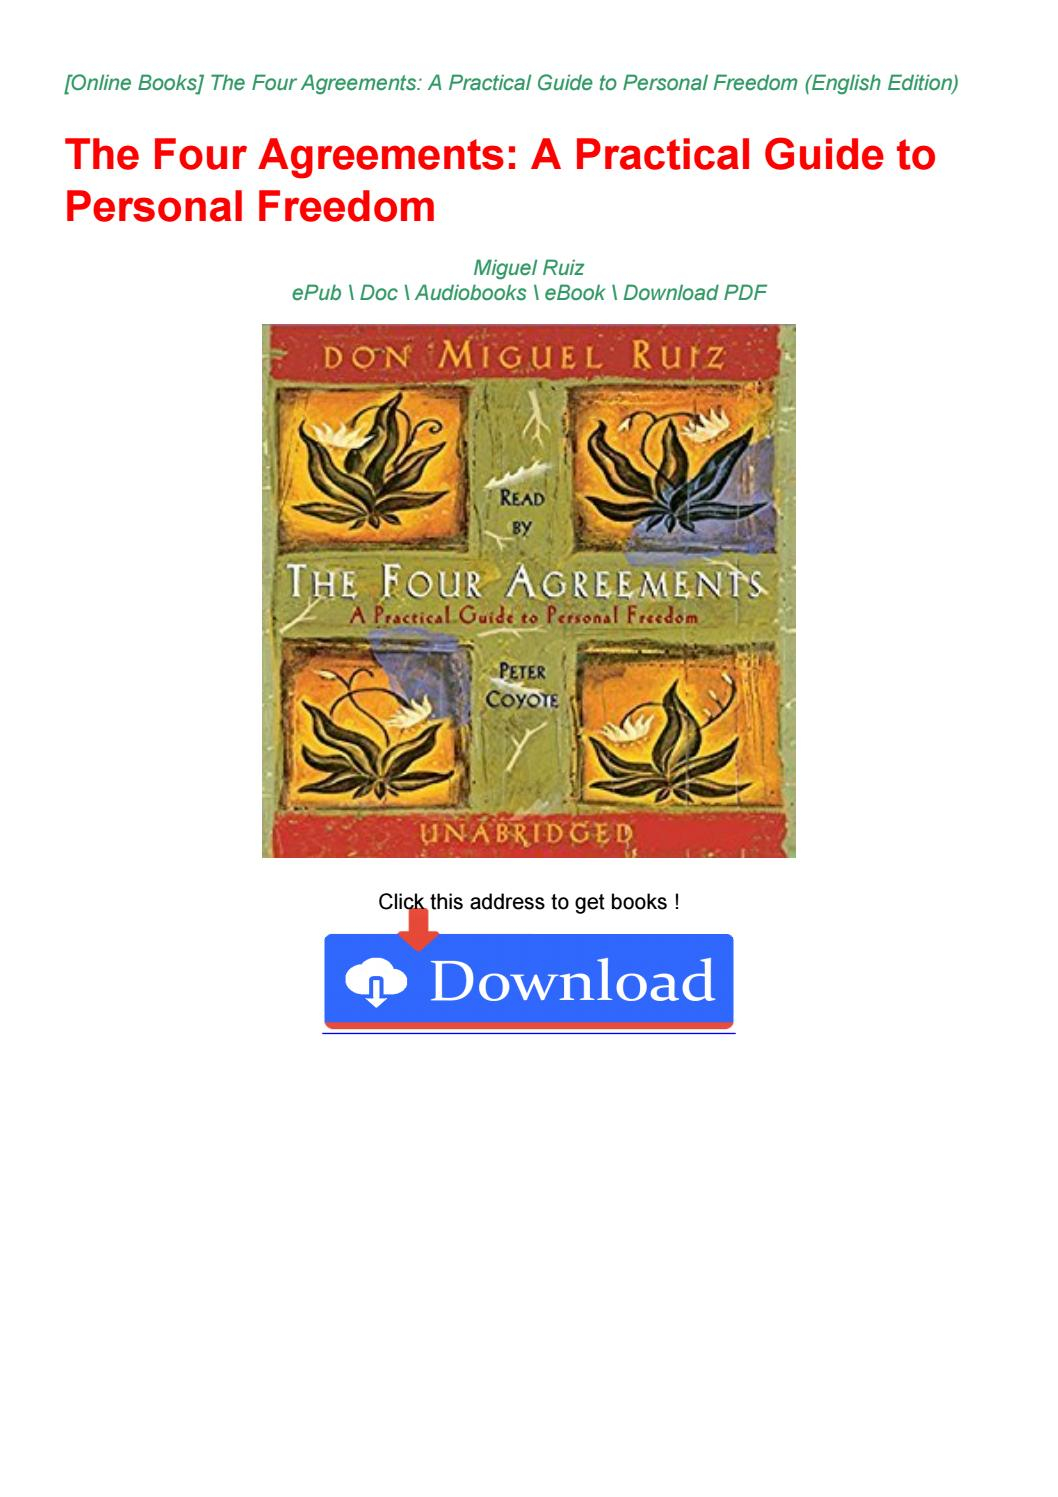 Four Agreements Book Free Download Ebook Download Free Pdf The Four Agreements A Practical Guide To